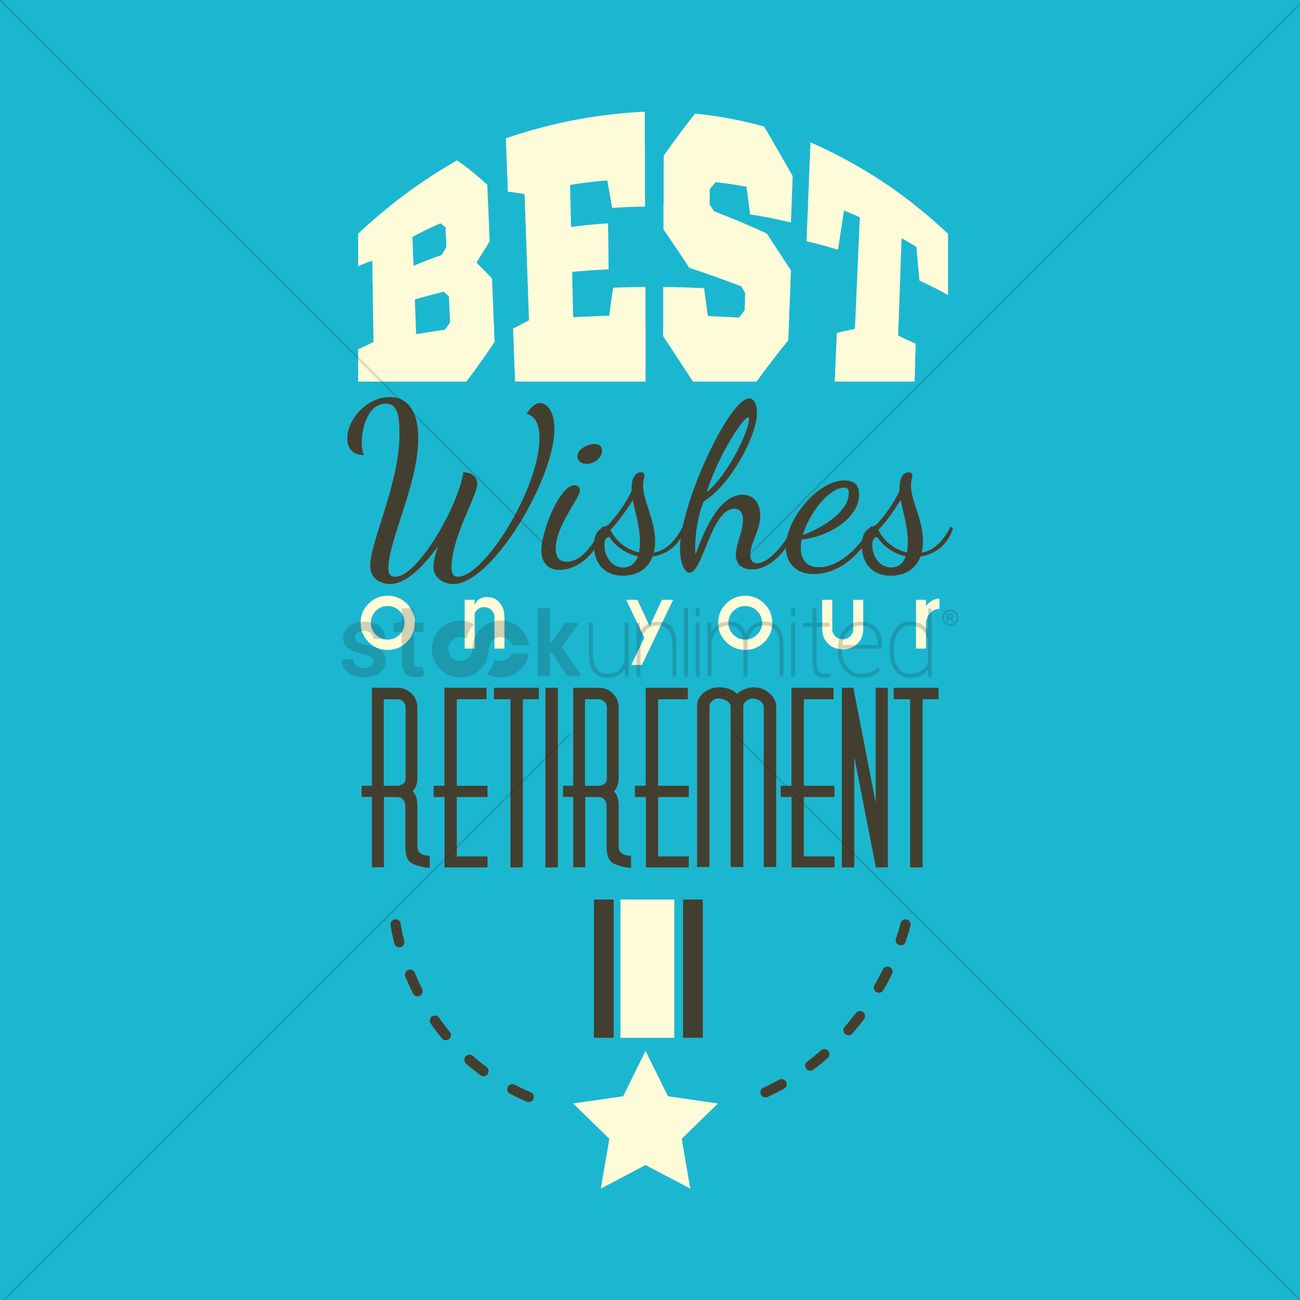 Best wishes on your retirement Vector Image - 1827319 ...